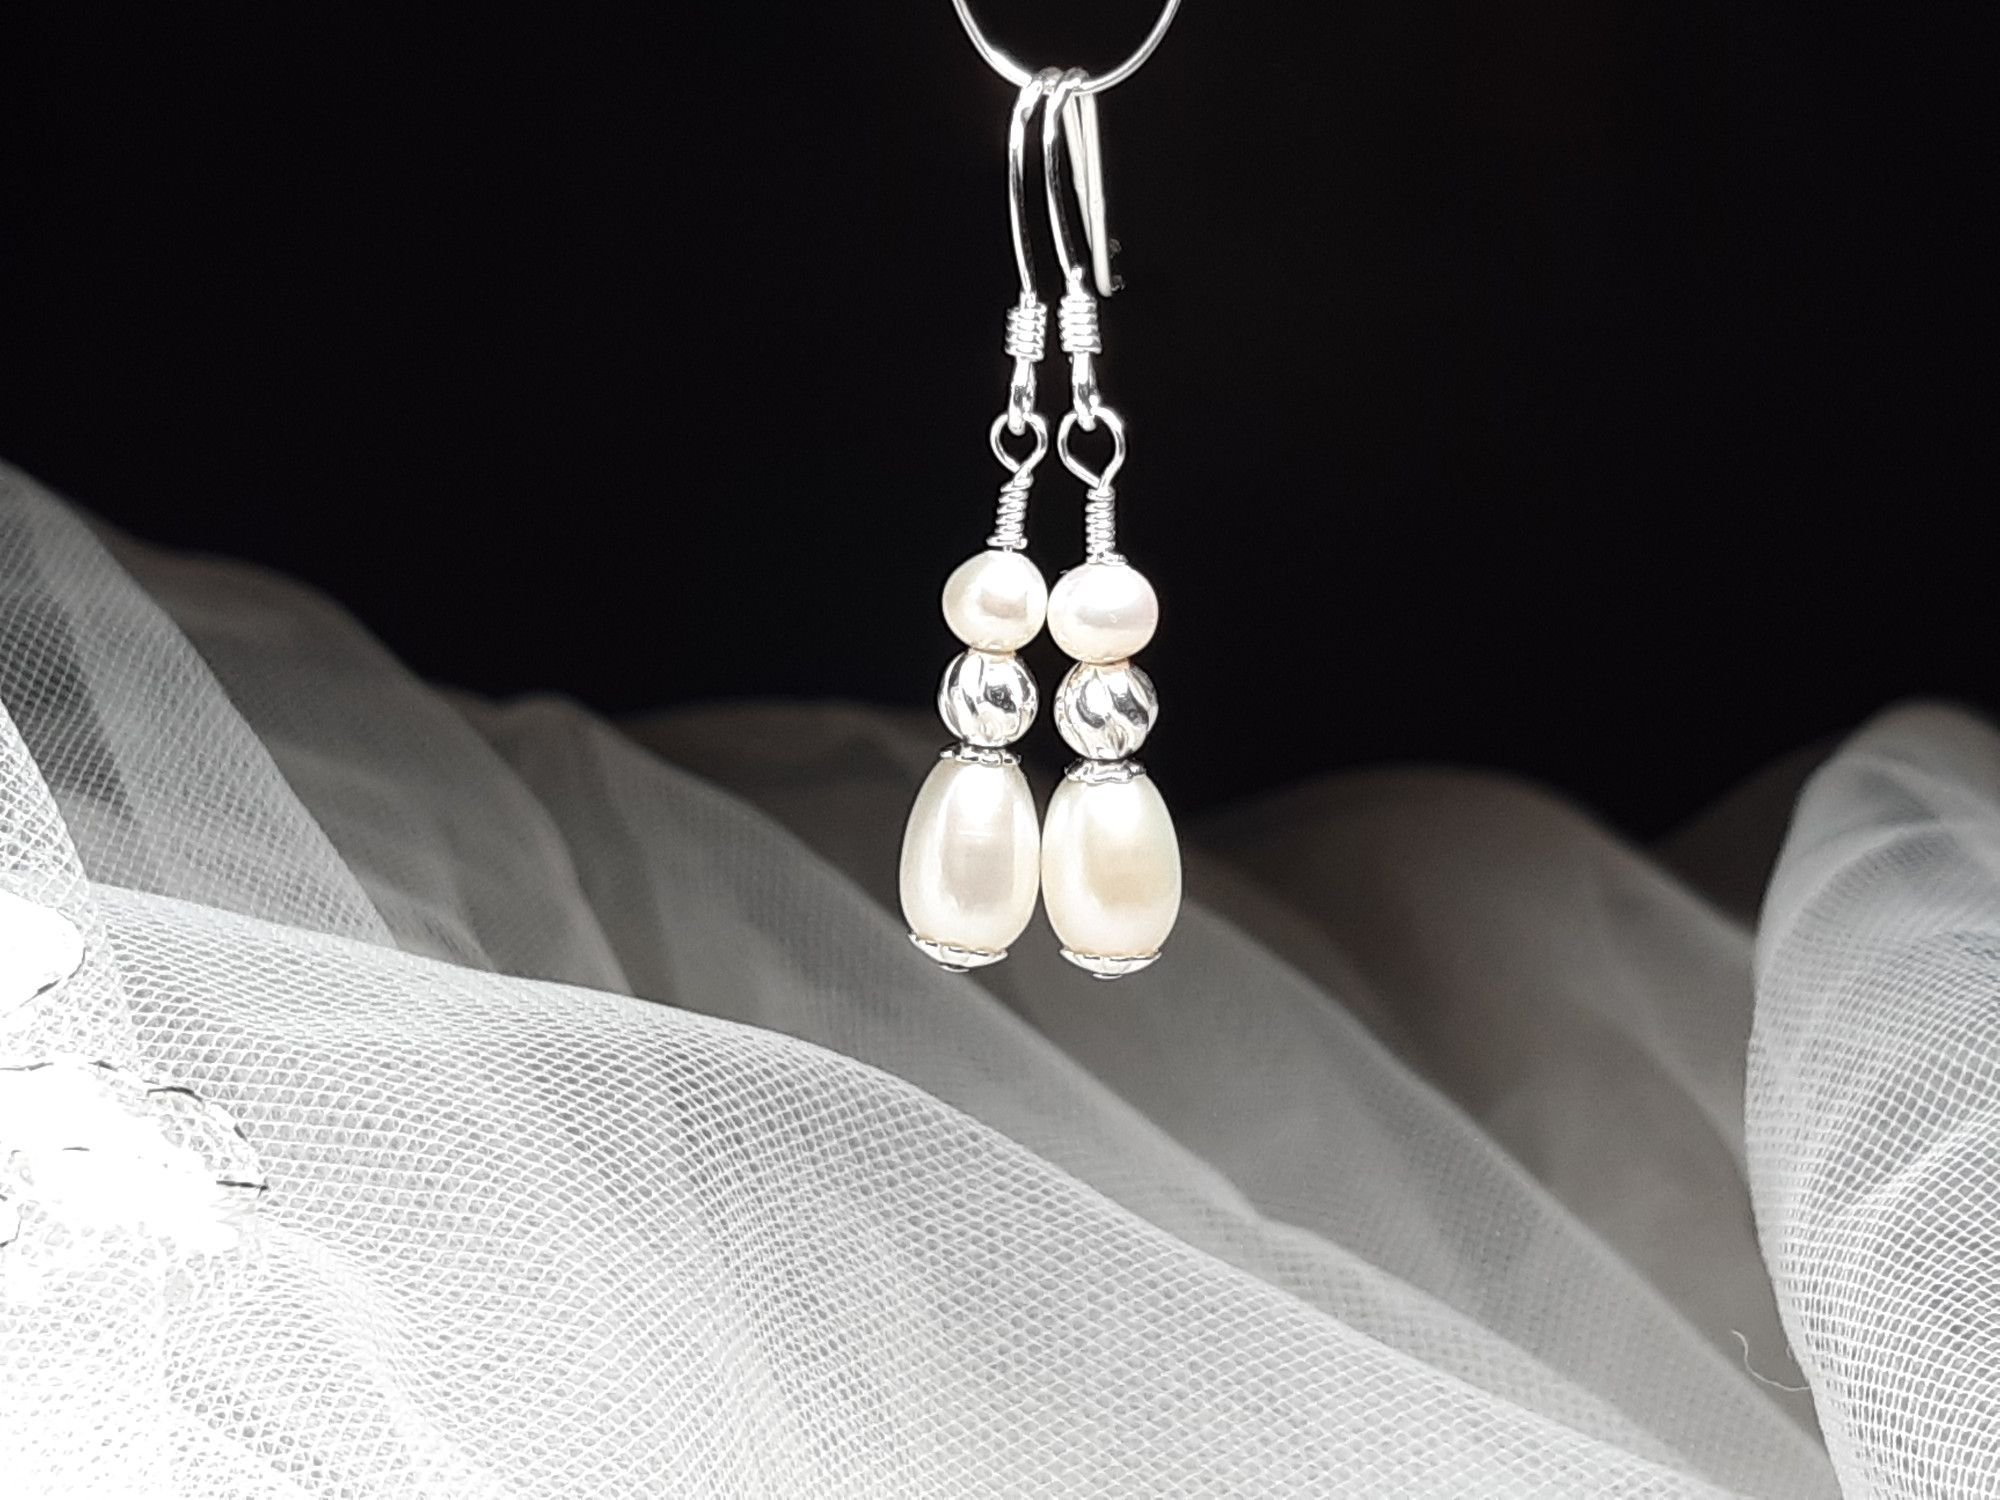 Occasion-bridal-pearl drop earrings with sterling silver-6.jpg